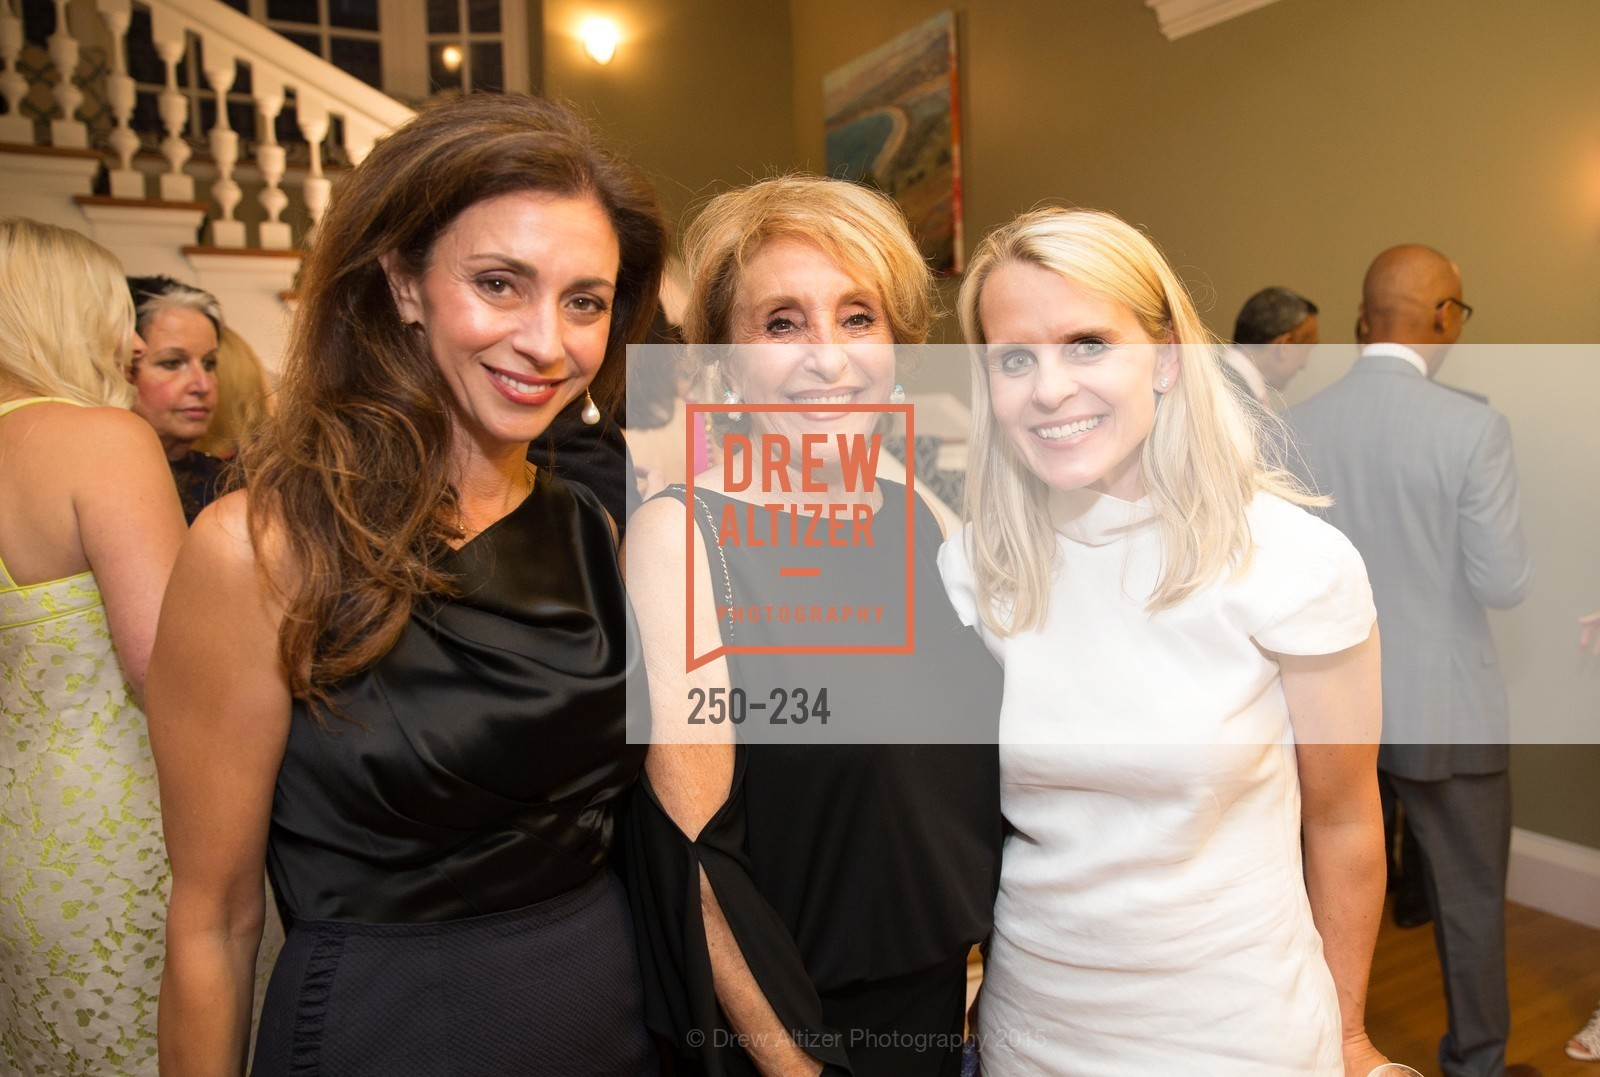 Maryam Muduroglu, Nazan Orr, Janes Mudge, San Francisco Opera Ball 2015 Patron Party, Private Residence, August 19th, 2015,Drew Altizer, Drew Altizer Photography, full-service agency, private events, San Francisco photographer, photographer california